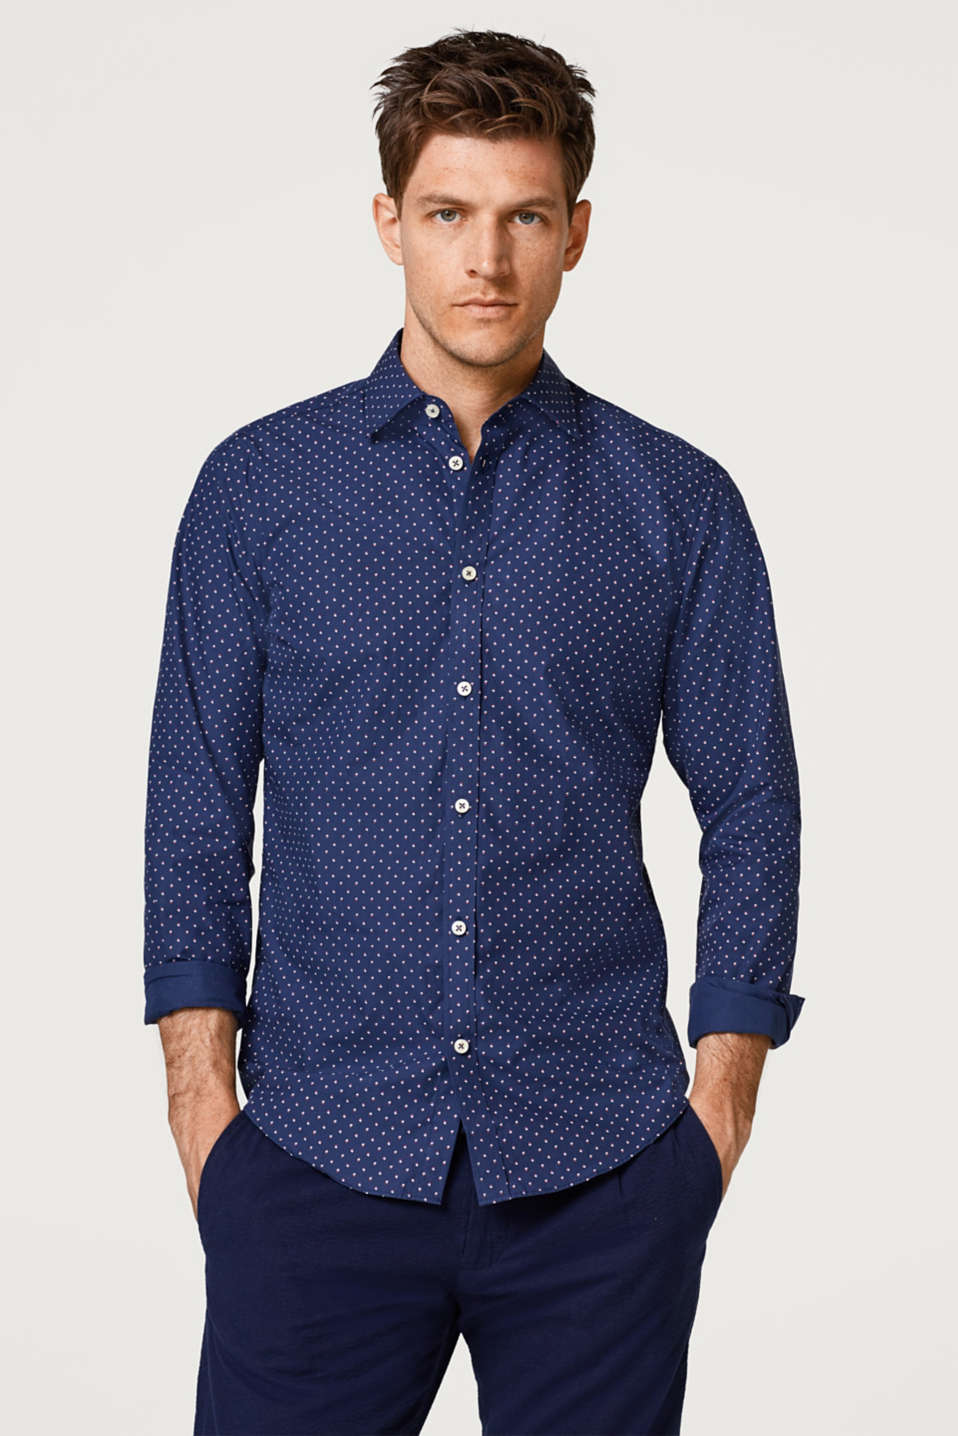 Esprit - Easy-iron print shirt, 100% cotton